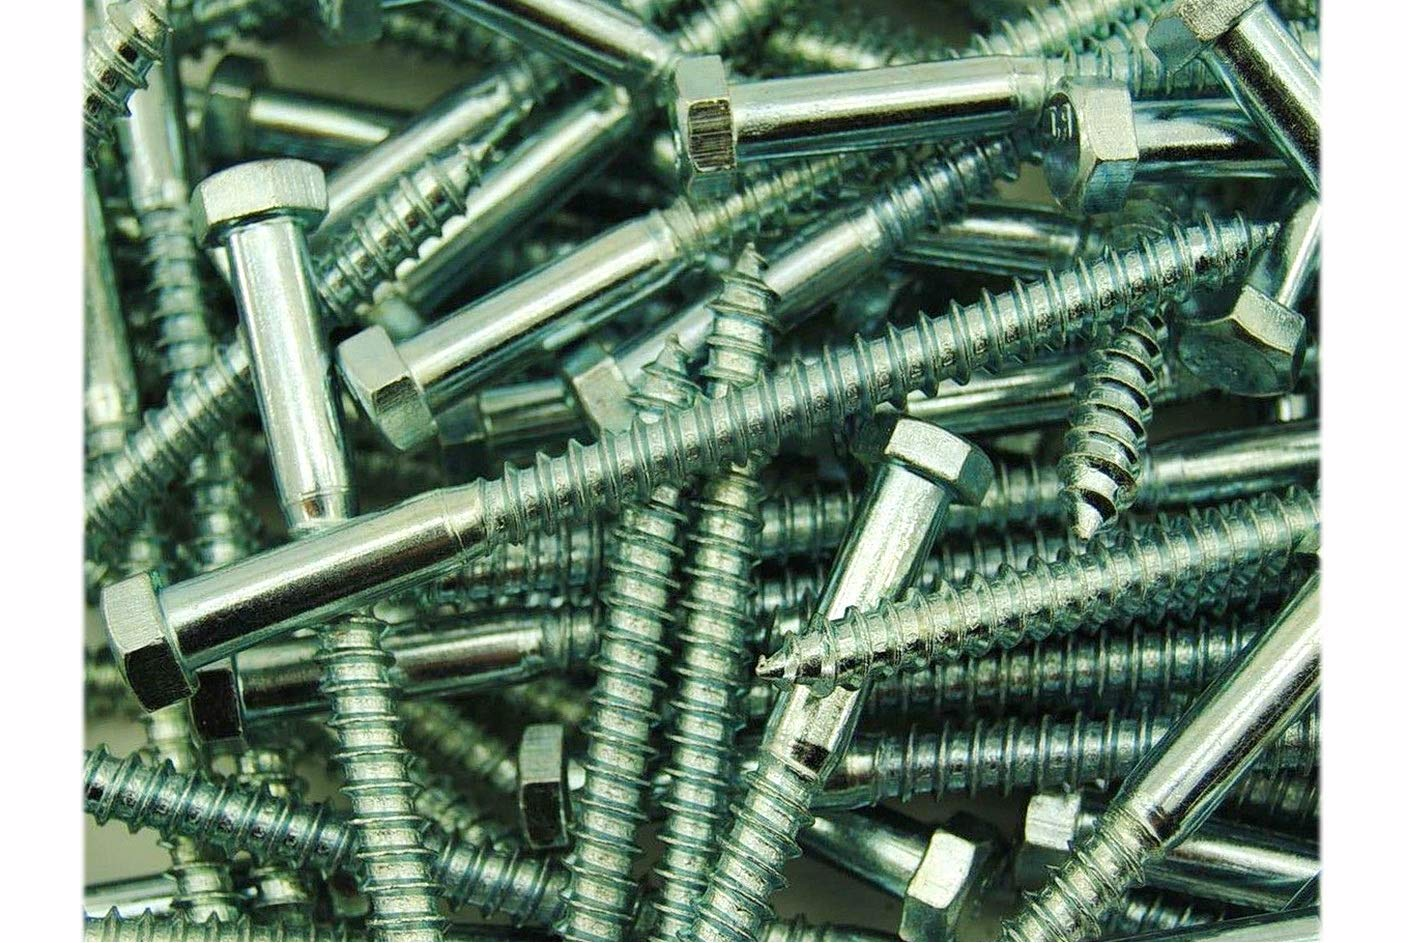 pcs New Package of 25 Hex Head 1//2 x 6 inch Lag Bolts Zinc Plate Wood Screws Set #MO1182-P Warranity by Pr-Mch